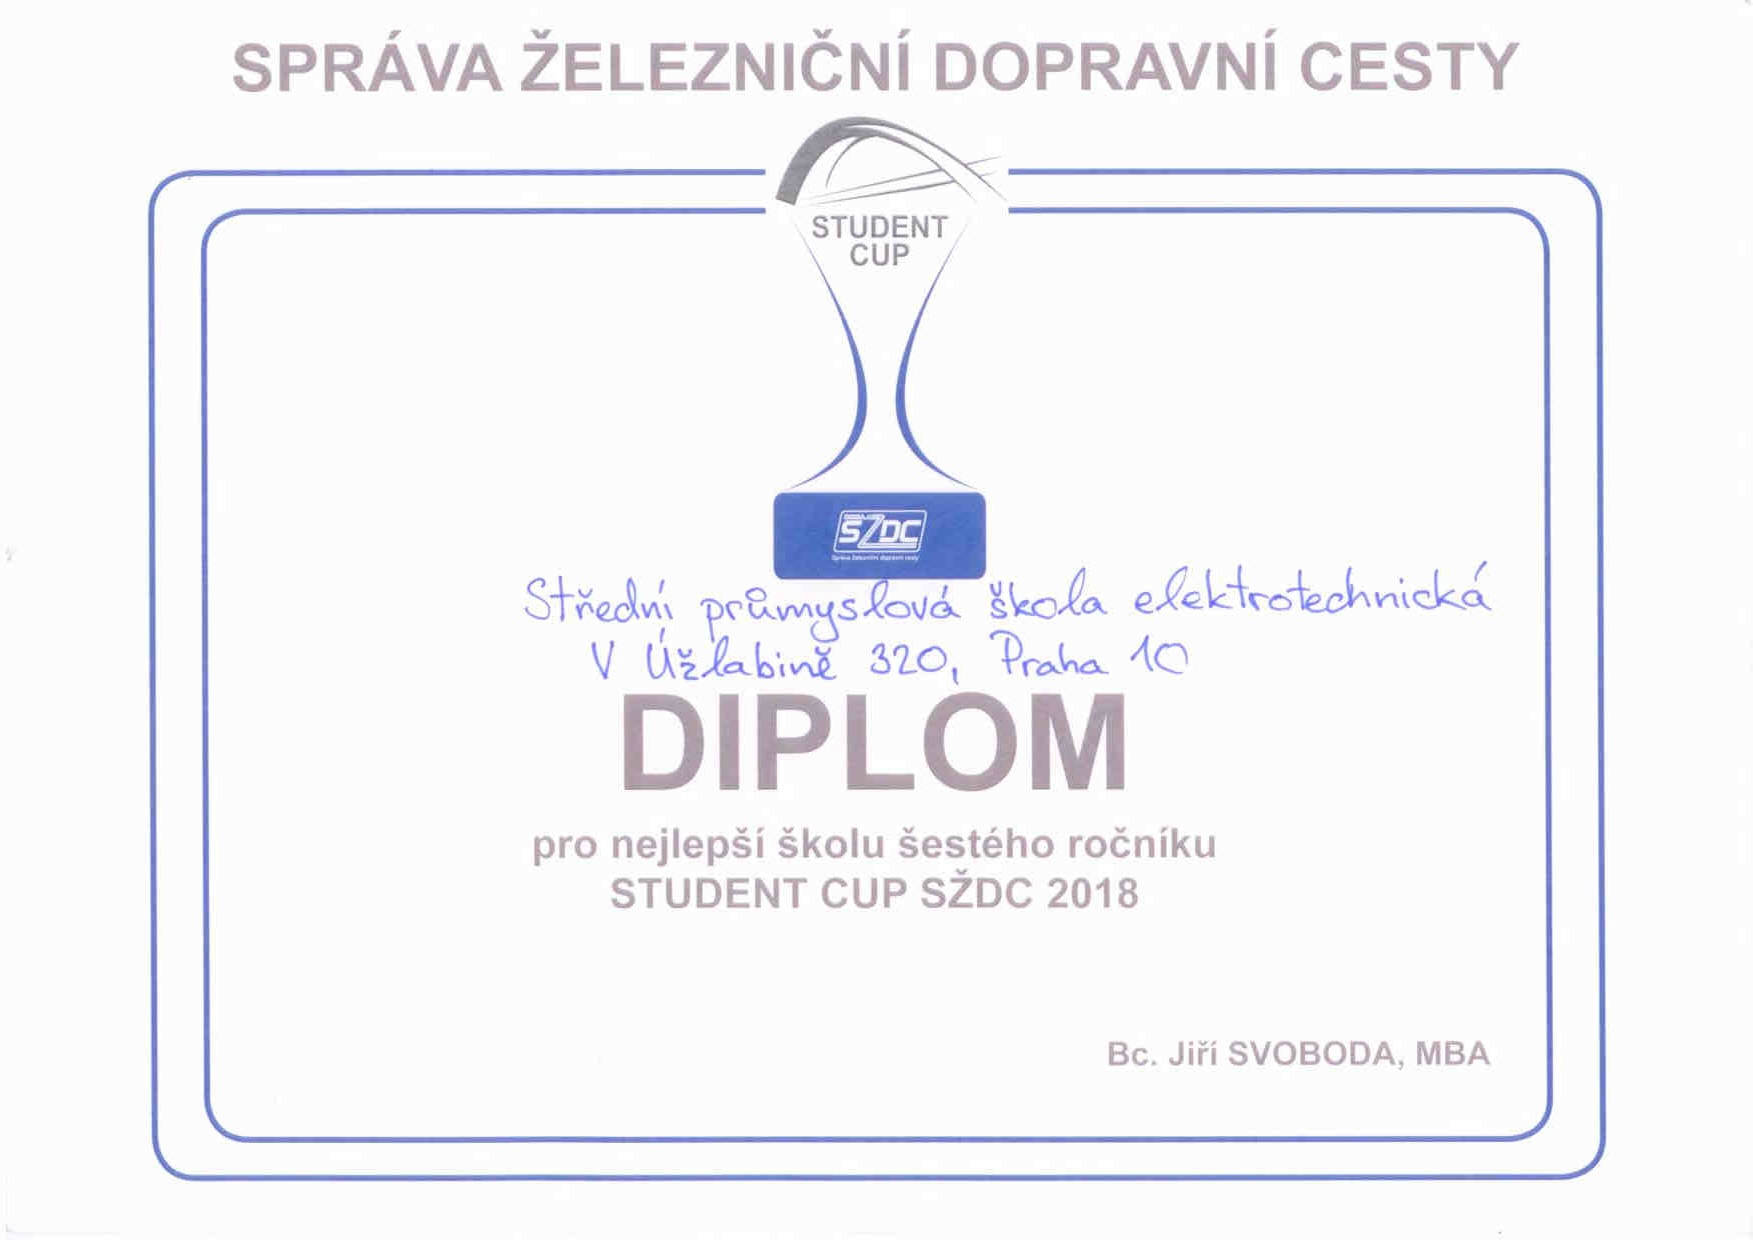 Student cup 2018